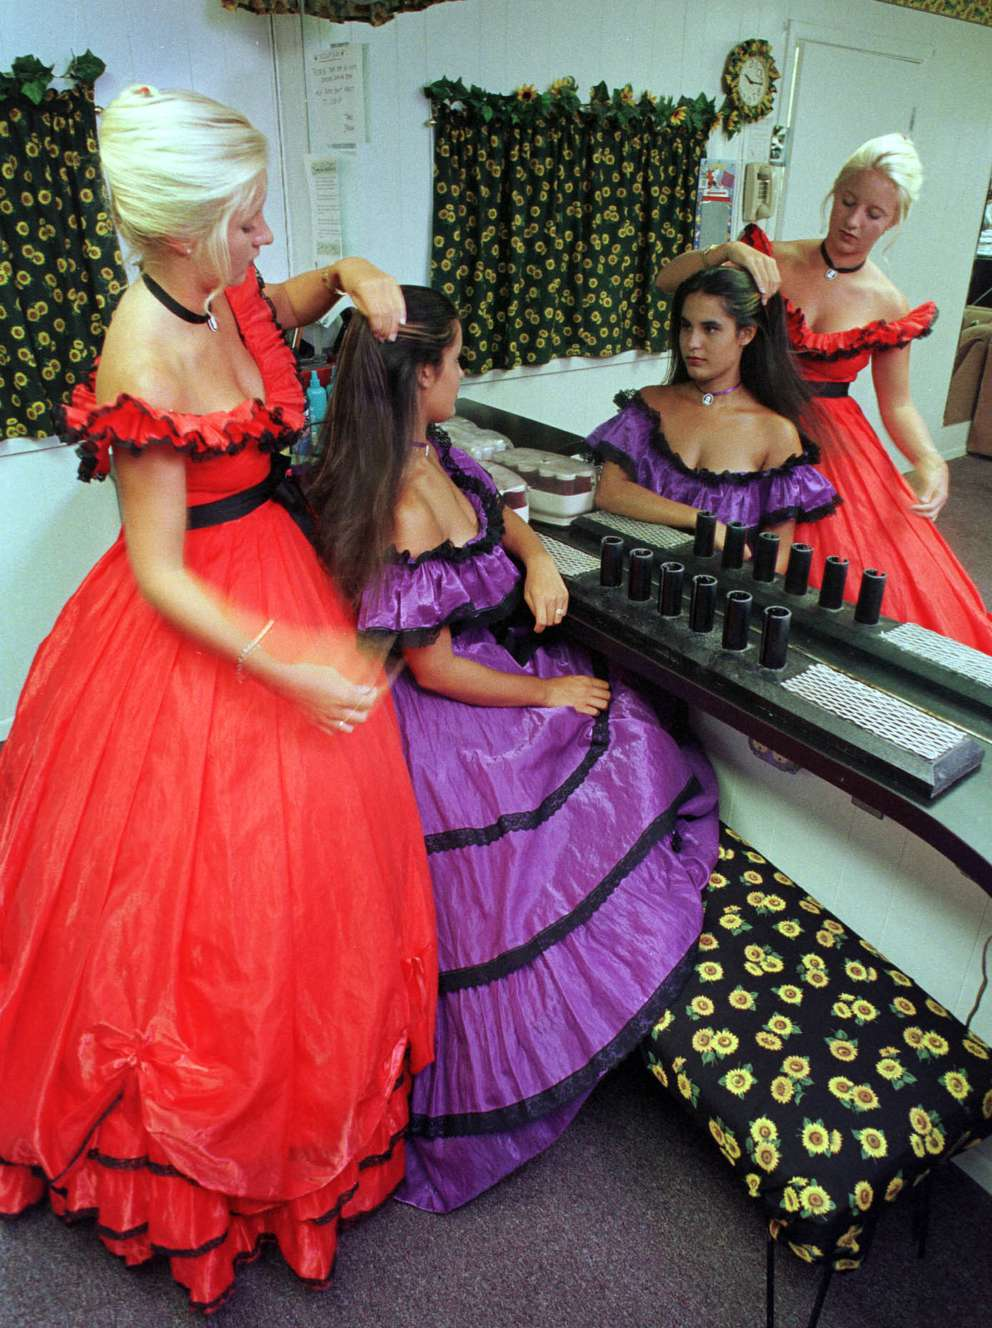 Cypress Gardens Belles Katie Campbell, in red, and Lisa Torres get ready for duty in their distinctive costumes. Times (1999)